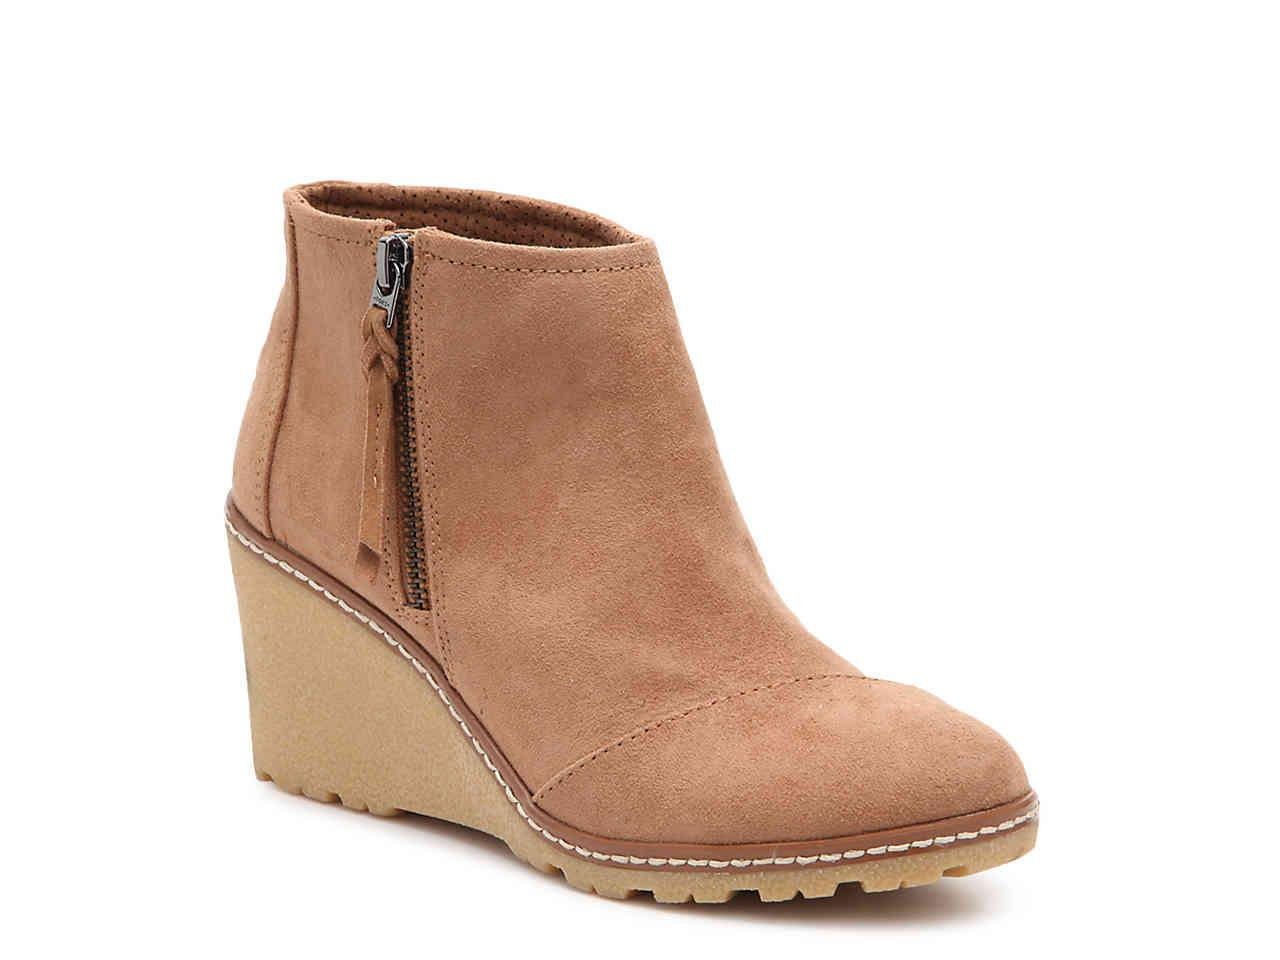 68576cf15f3 TOMS - Brown Avery Wedge Bootie - Lyst. View fullscreen